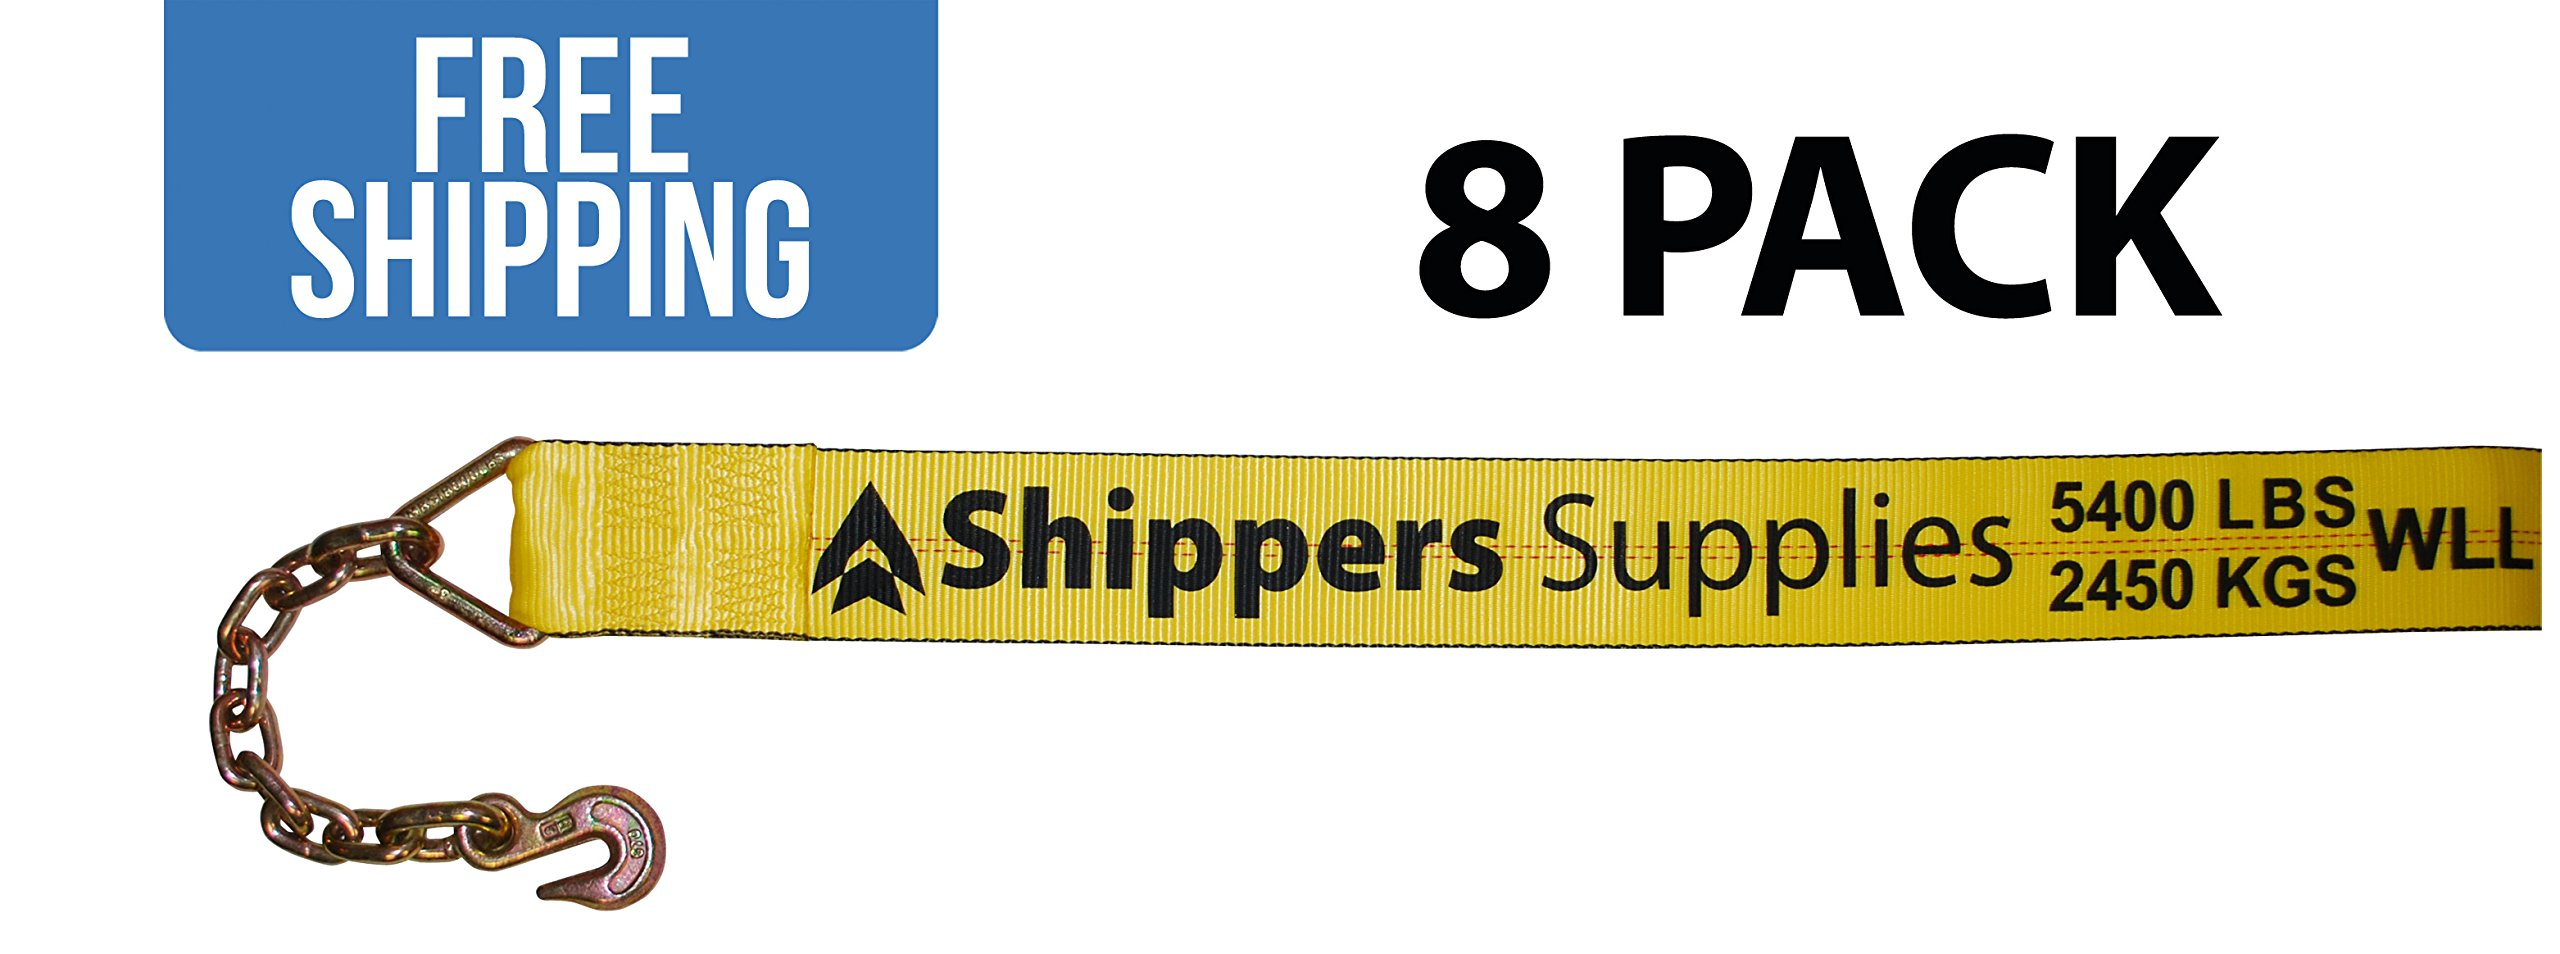 4'' x 30' Winch Strap with Chain Hook - 8 PACK Shippers Supplies